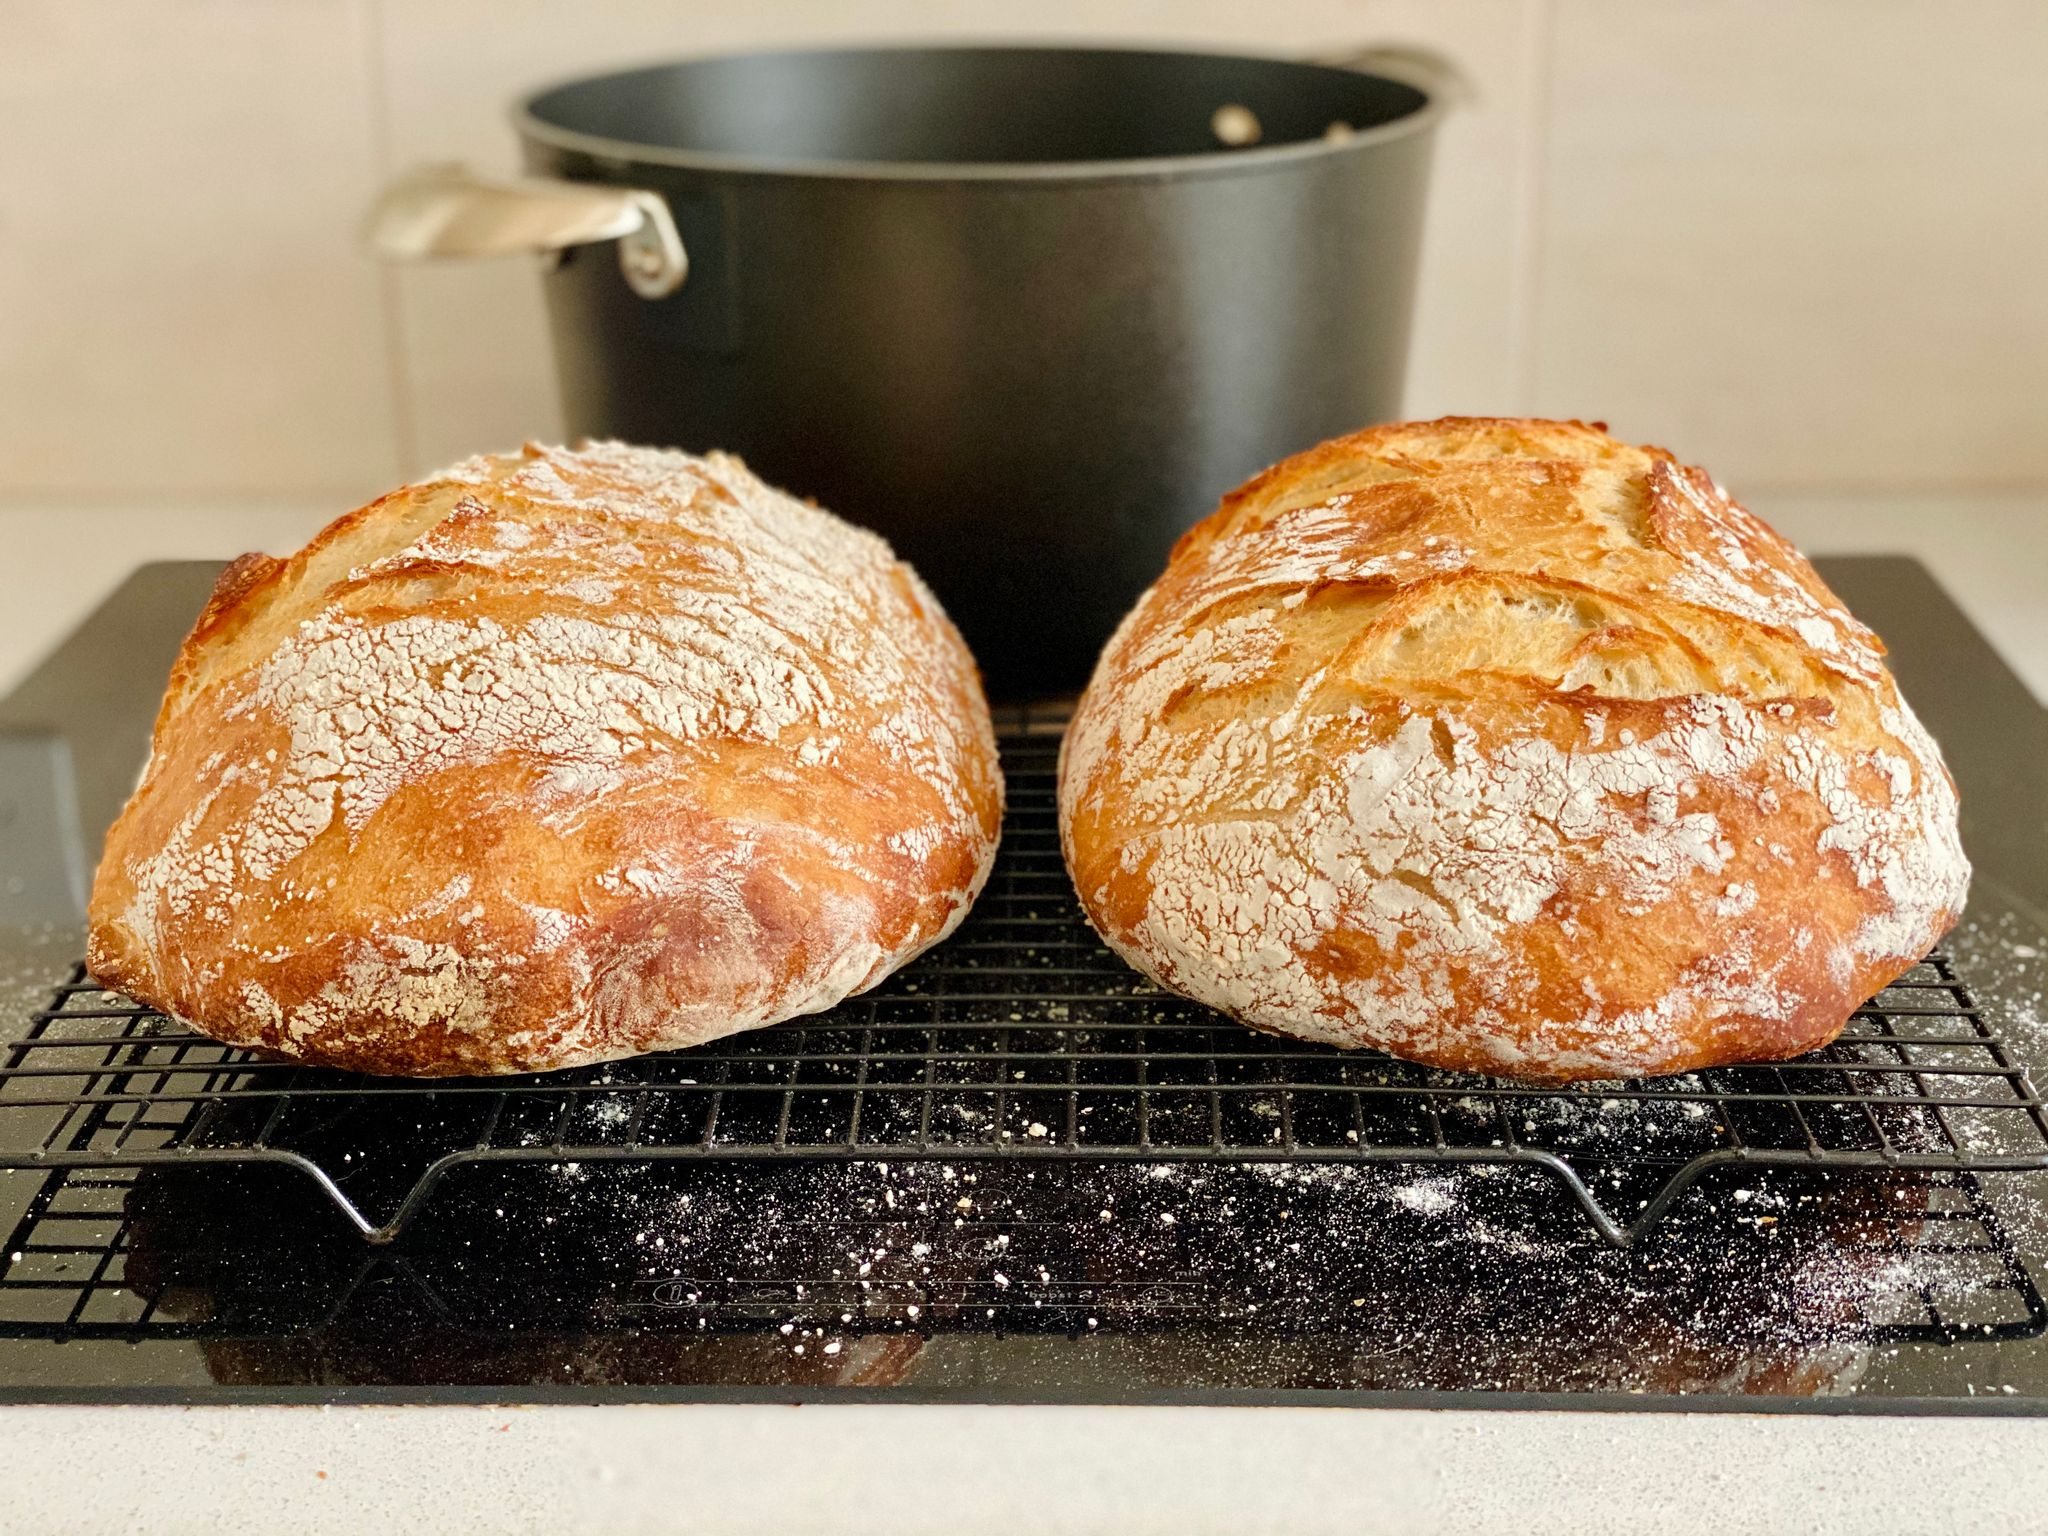 A photo of two golden round loaves of white bread sitting on a cooling rack.